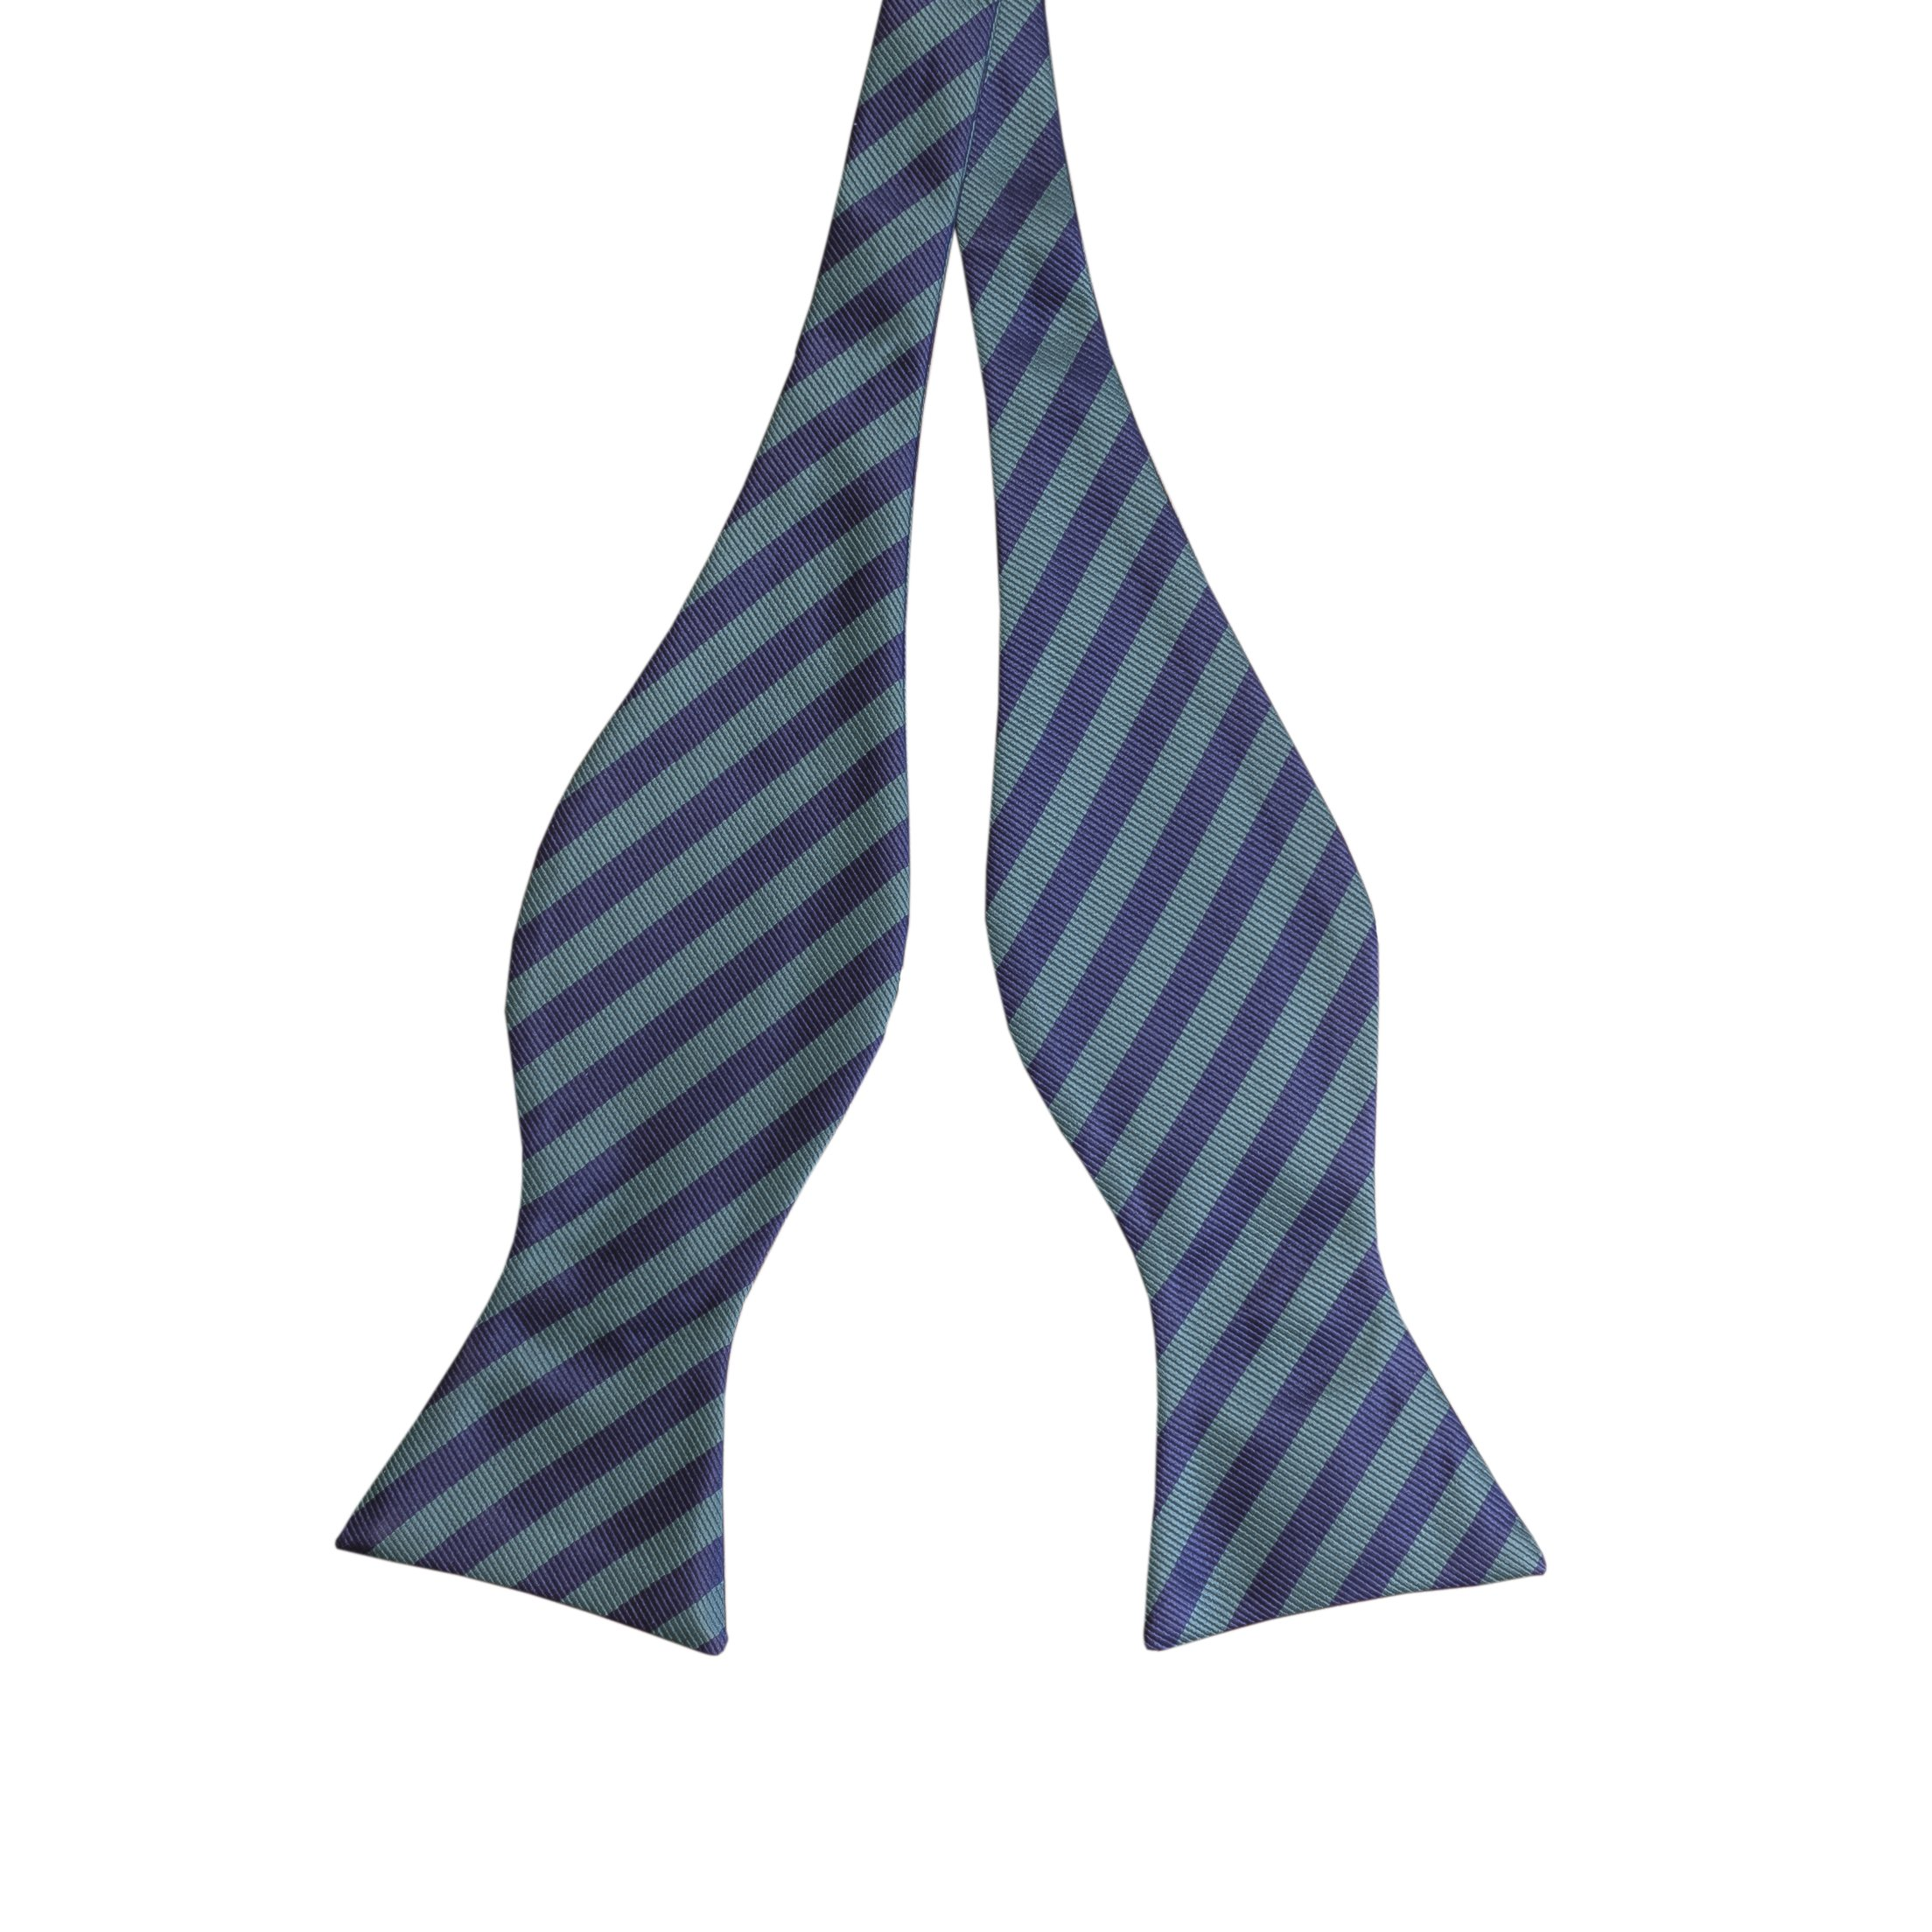 Luther Pike Self Tie Woven Striped Bow Ties For Men Tuxedo Bowtie Green & Navy Blue Bow Tie